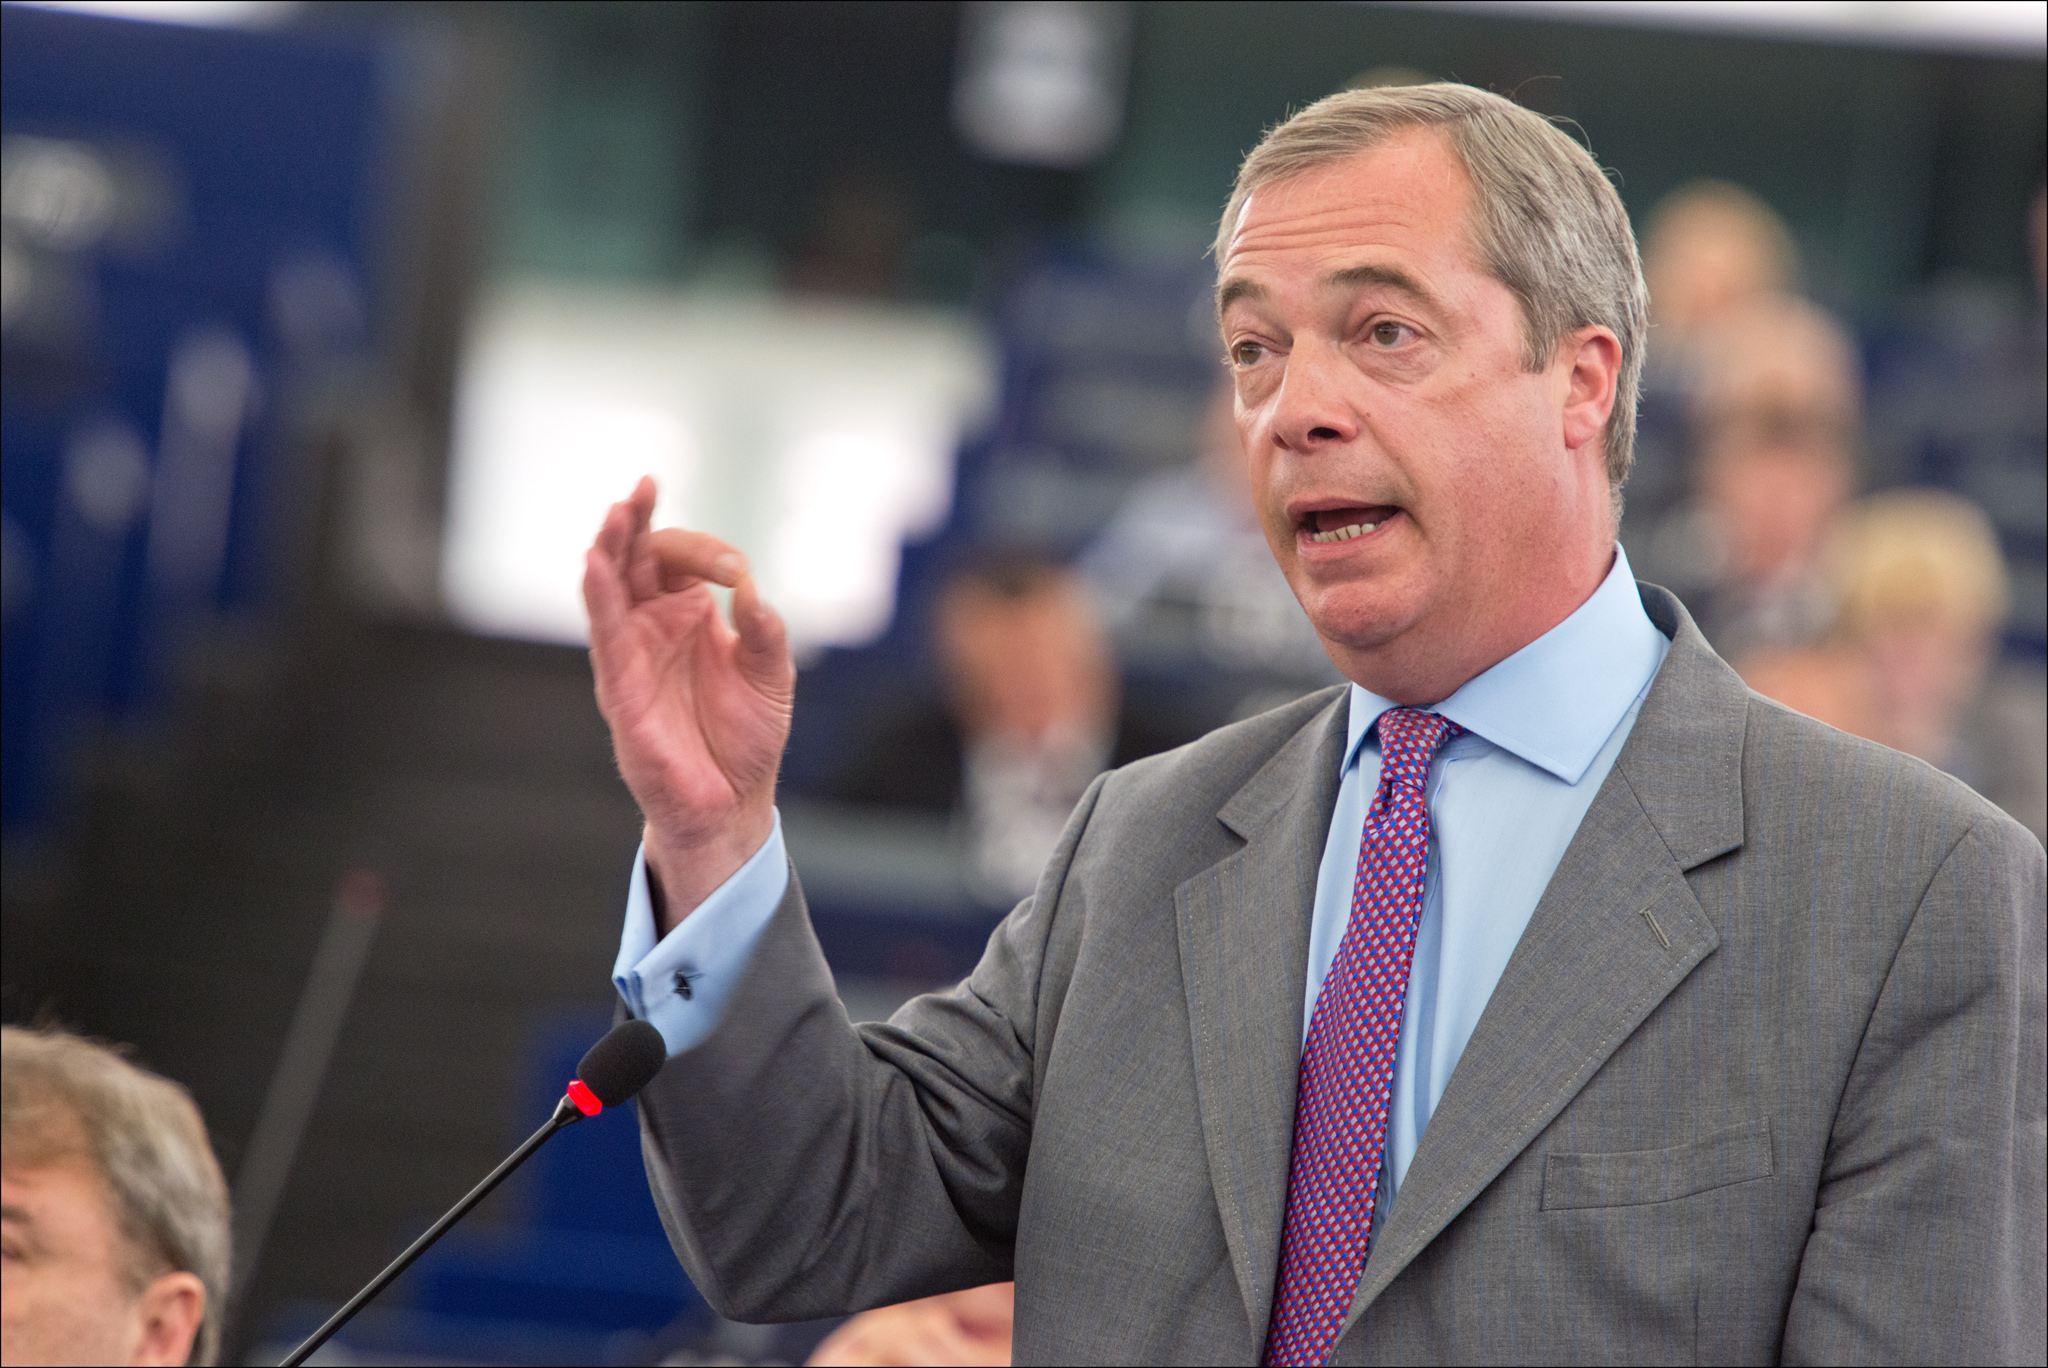 UK Independence Party Leader Nigel Farage speaks in the European Parliament in July 2014. Source: European Parliament (https://flic.kr/p/nTSpNg).